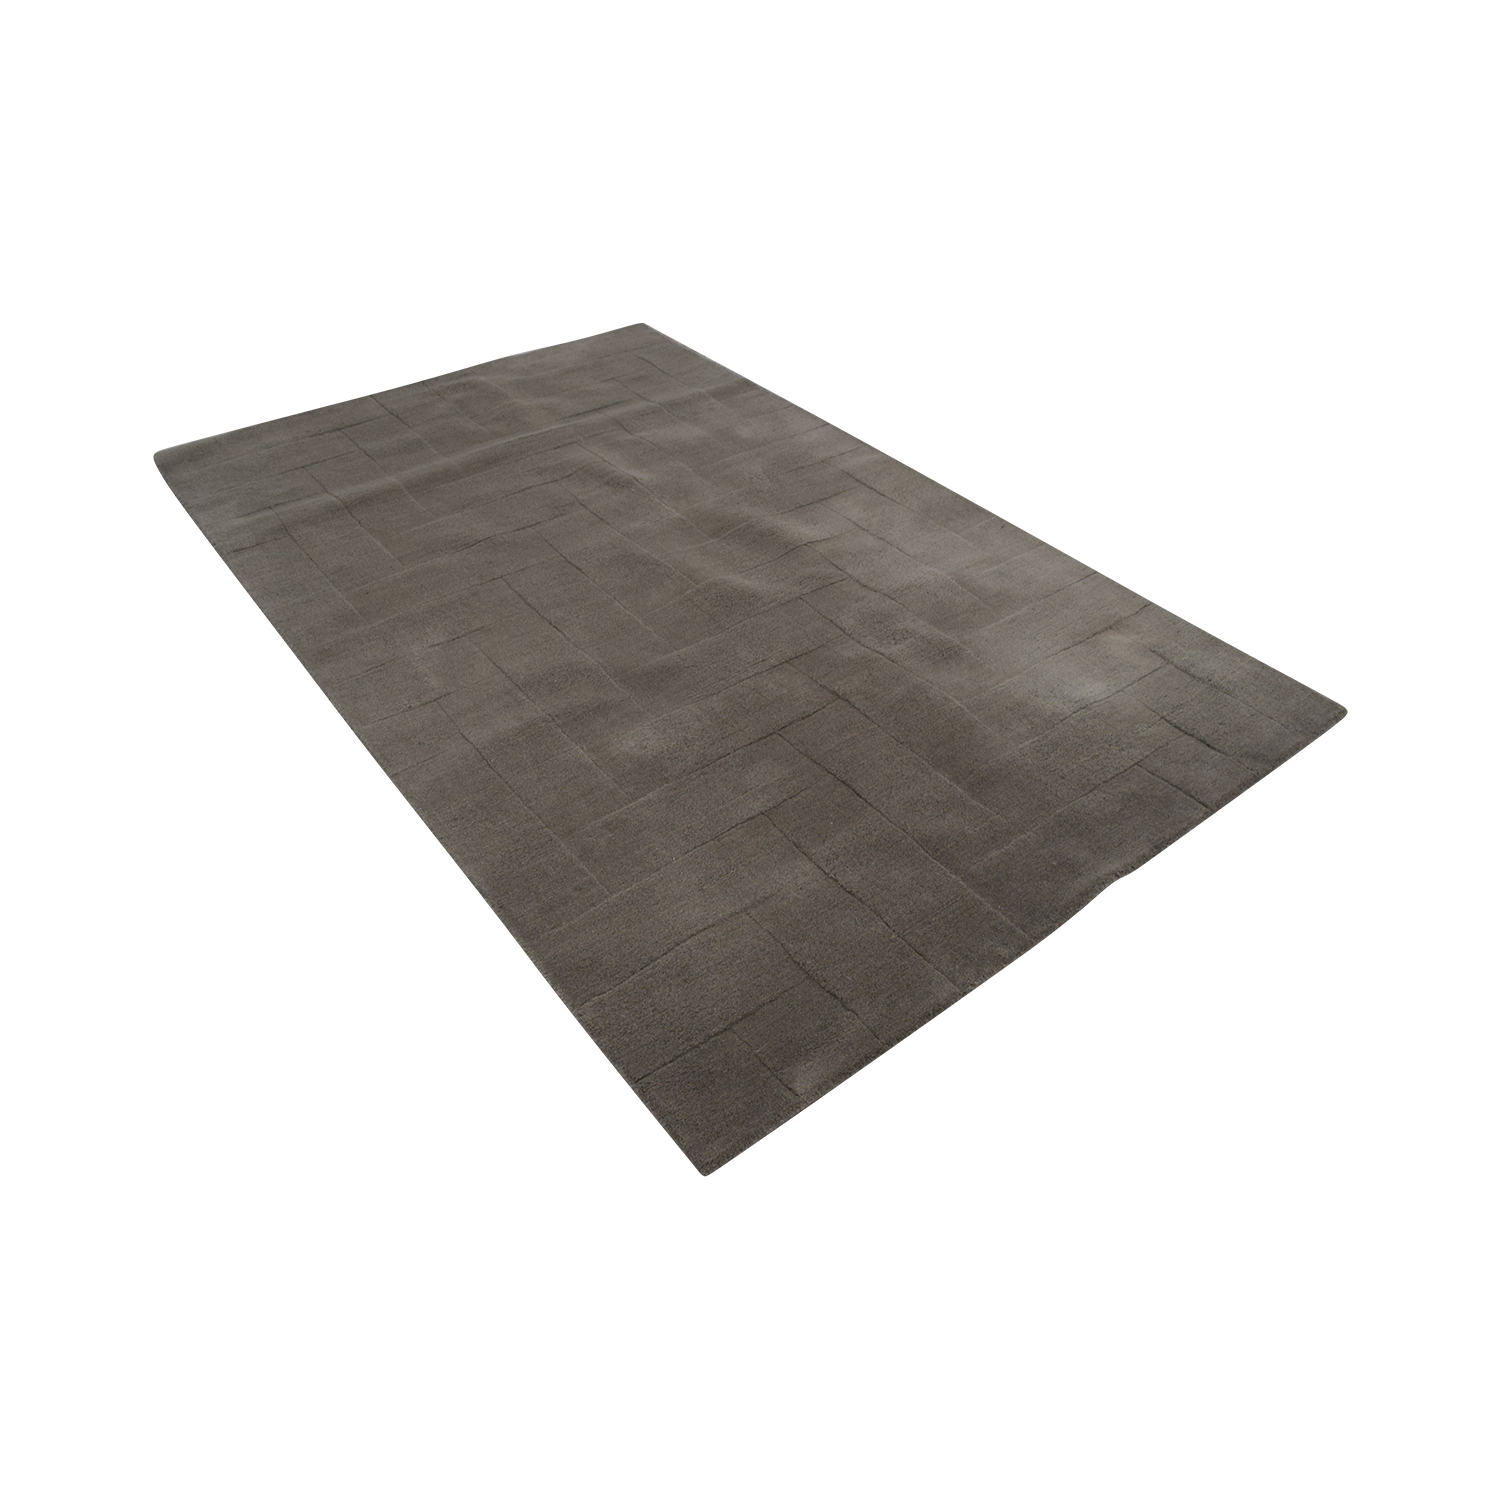 West Elm West Elm Solid Angled Basket Weave Grey Rug price